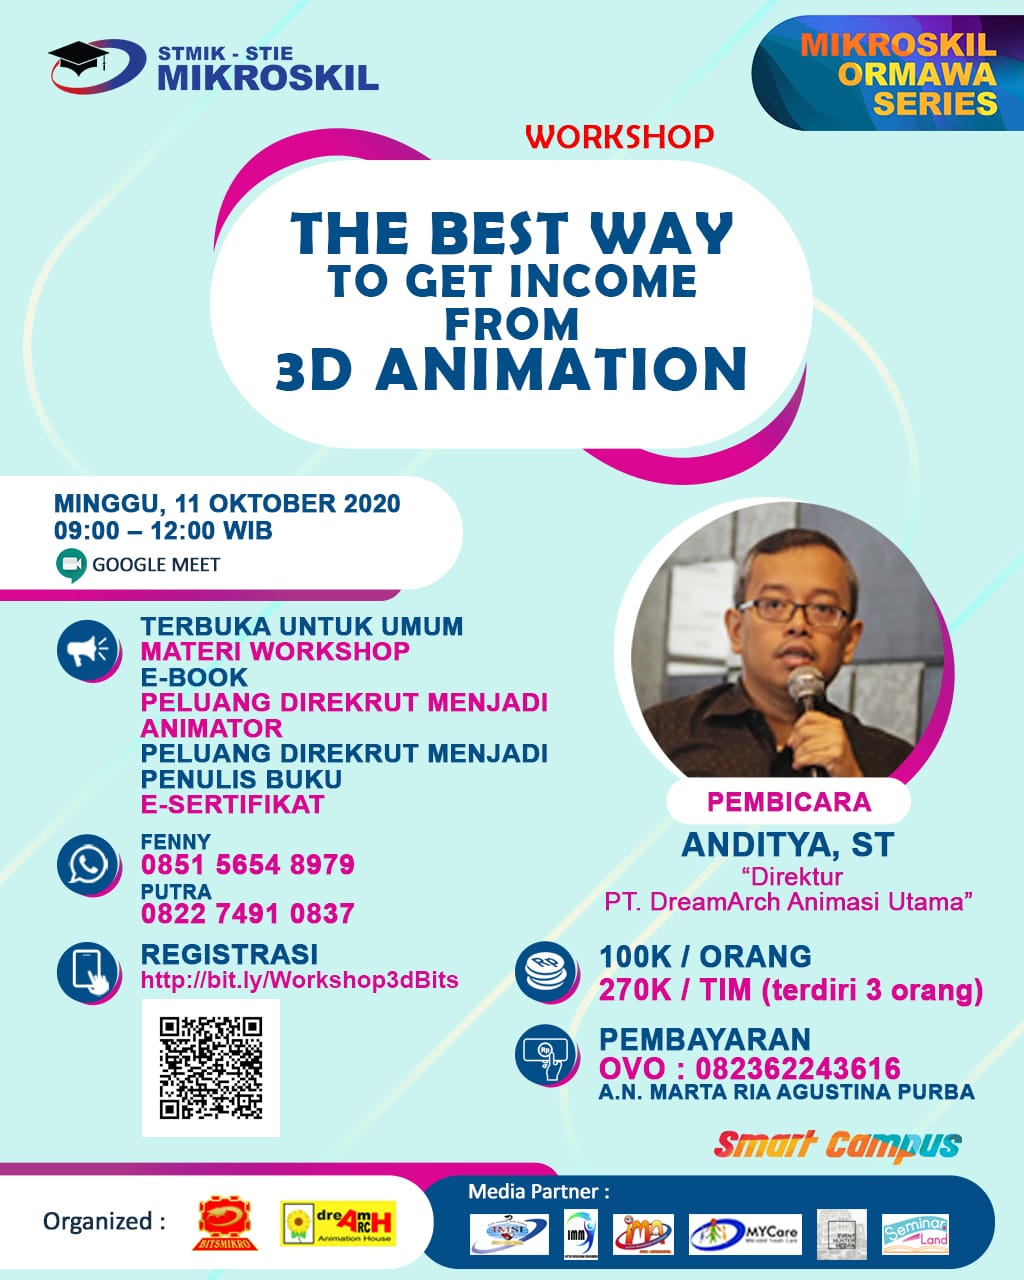 Poster: The Best Way to Get Income from 3D Animation